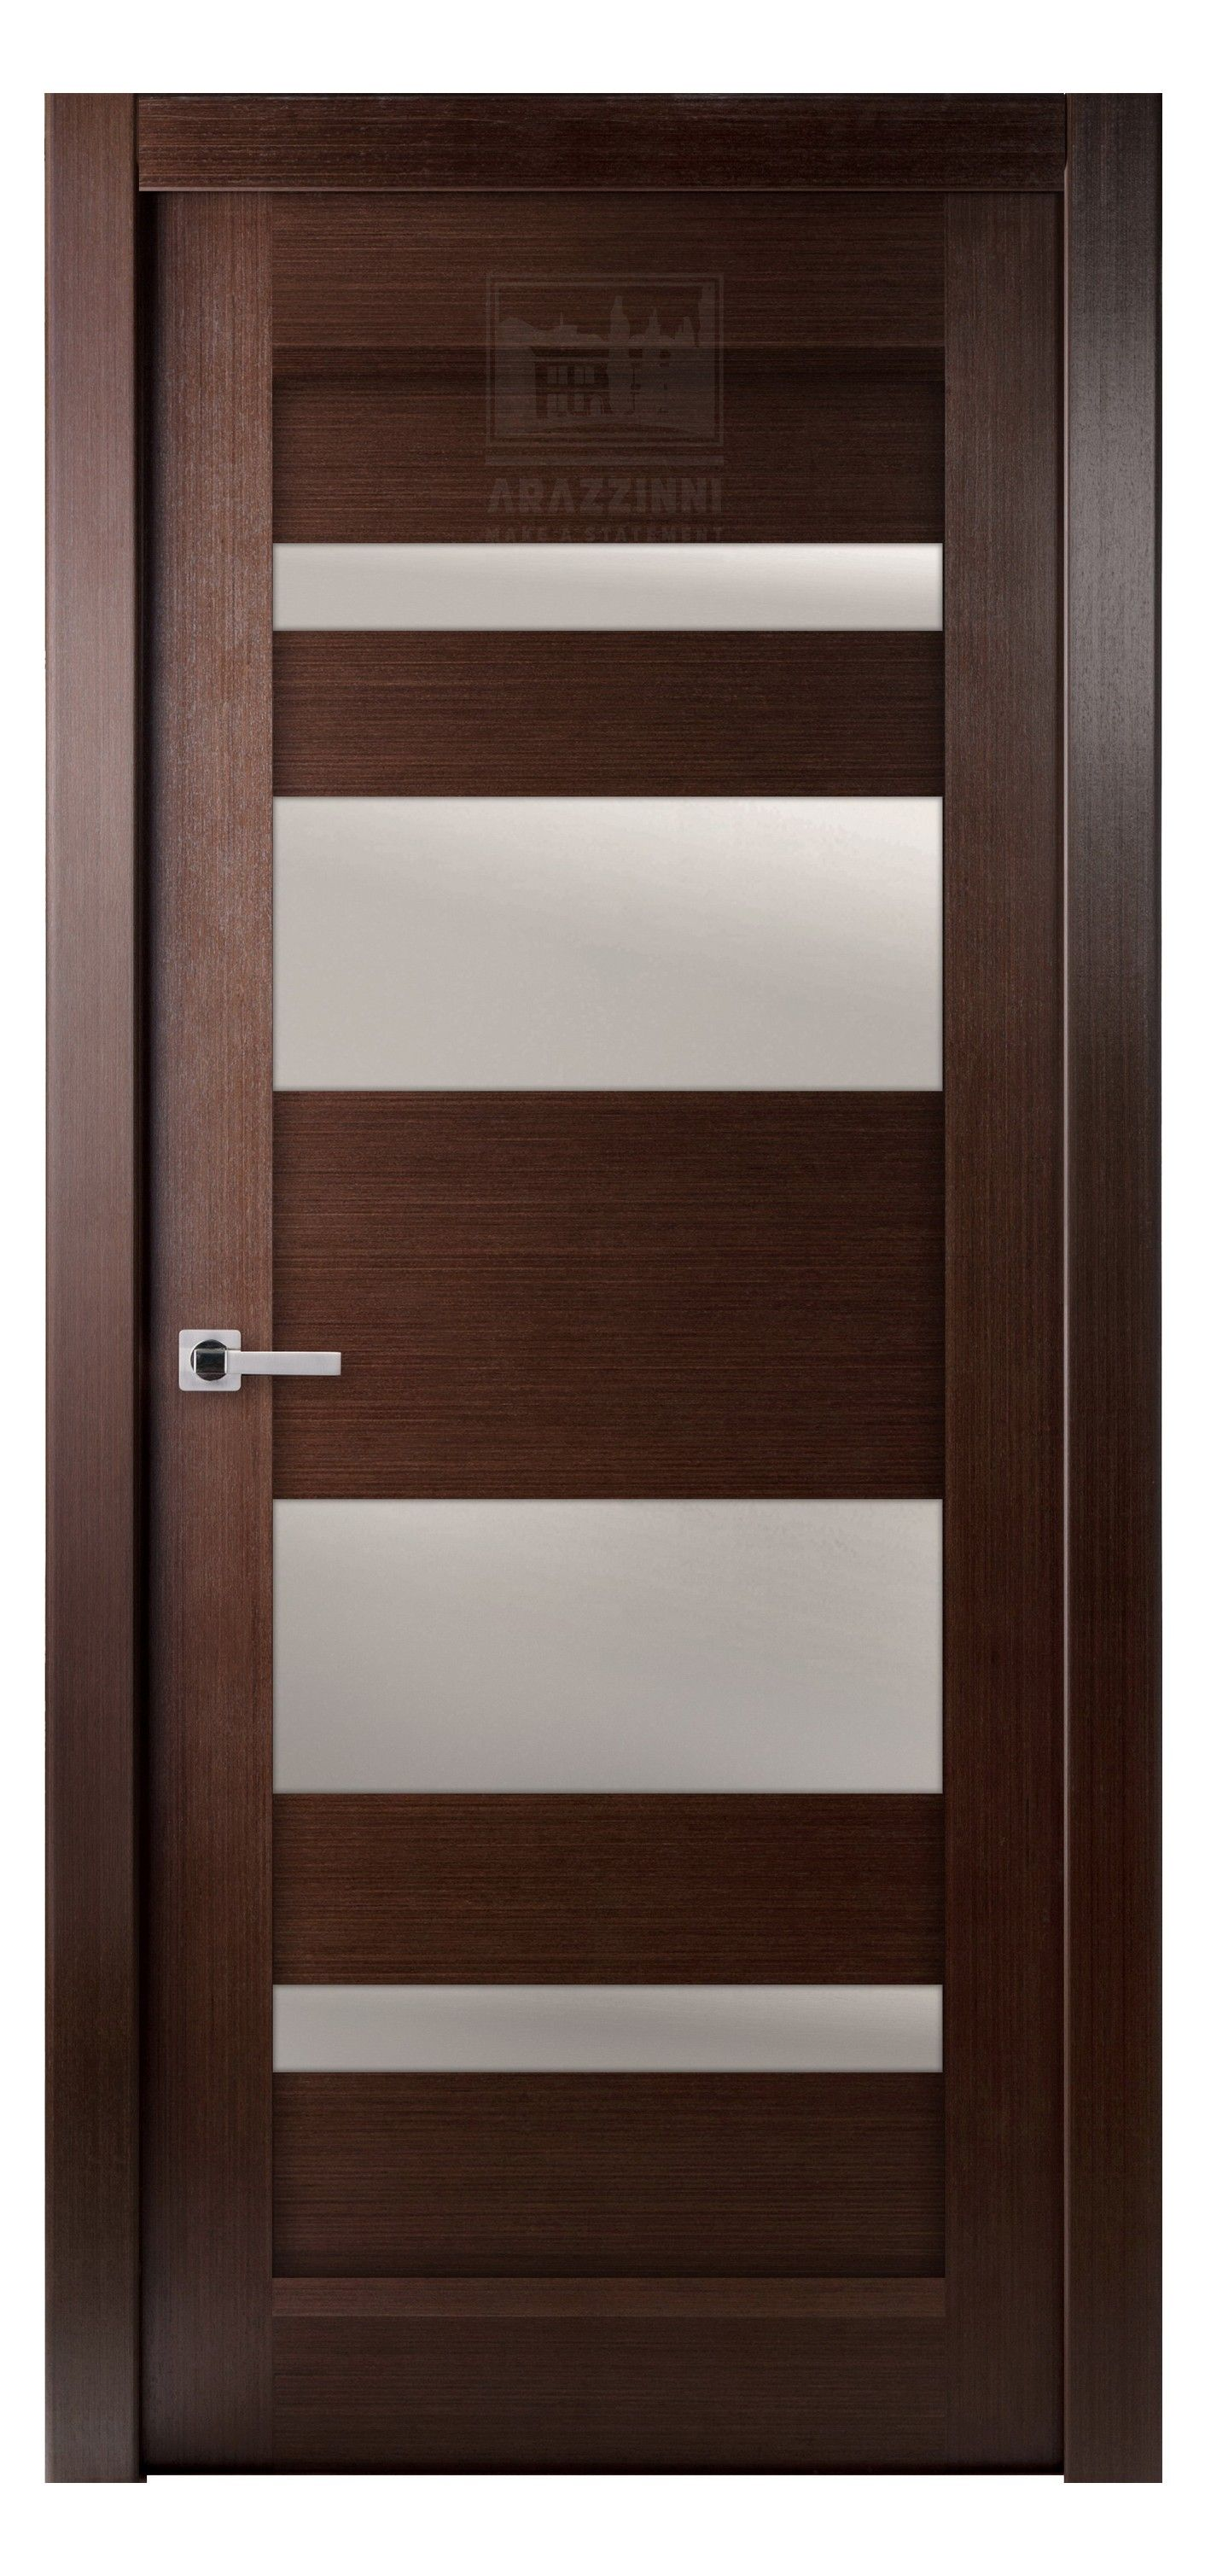 Mirella Vetro Interior Door Wenge | Wood doors interior